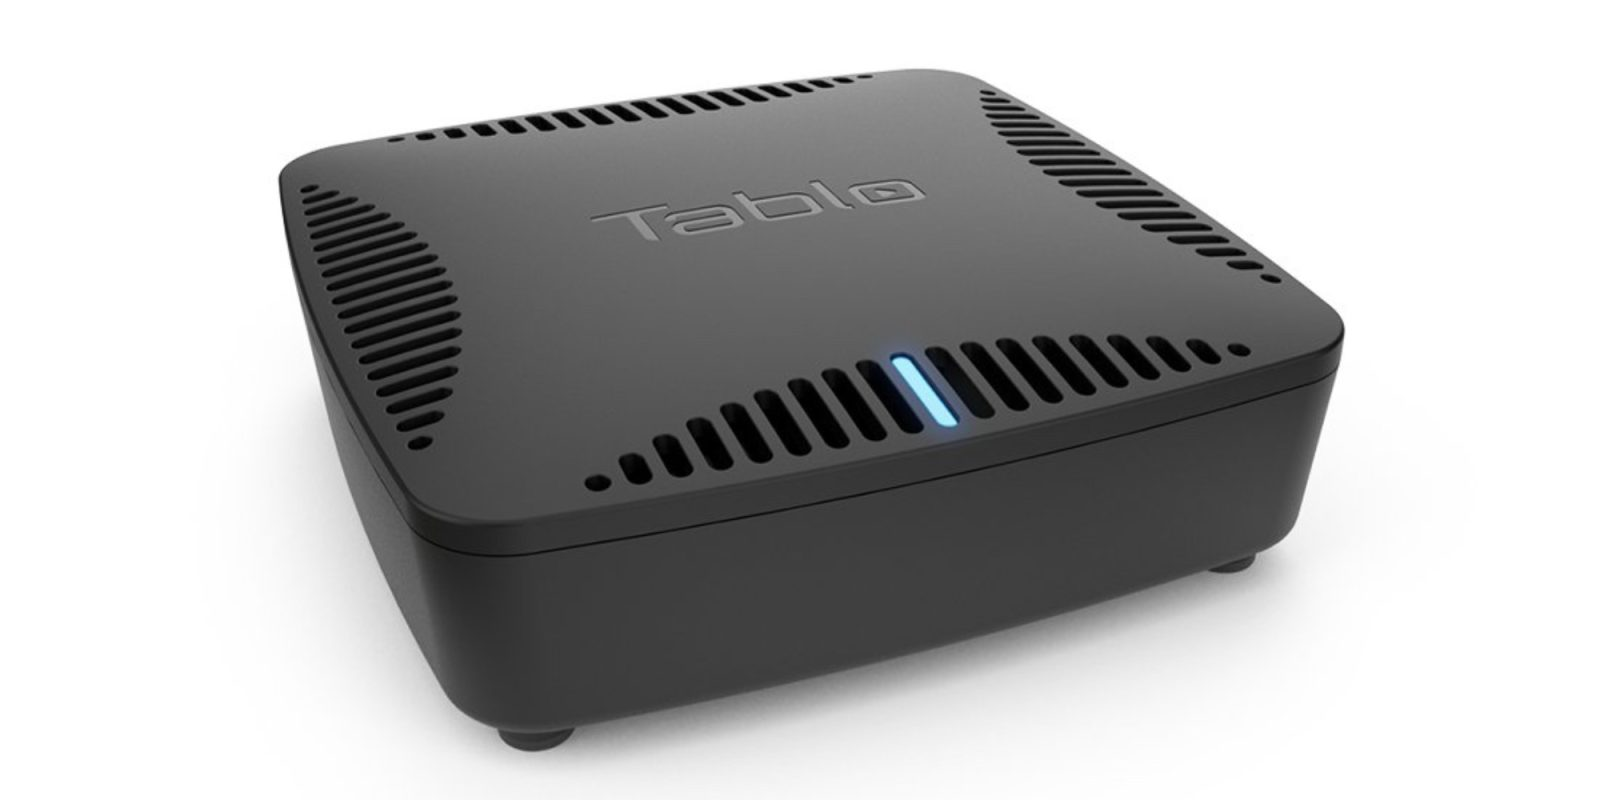 Tablo's Dual Tuner LITE OTA DVR is perfect for cord-cutters at $100 ($30 off)